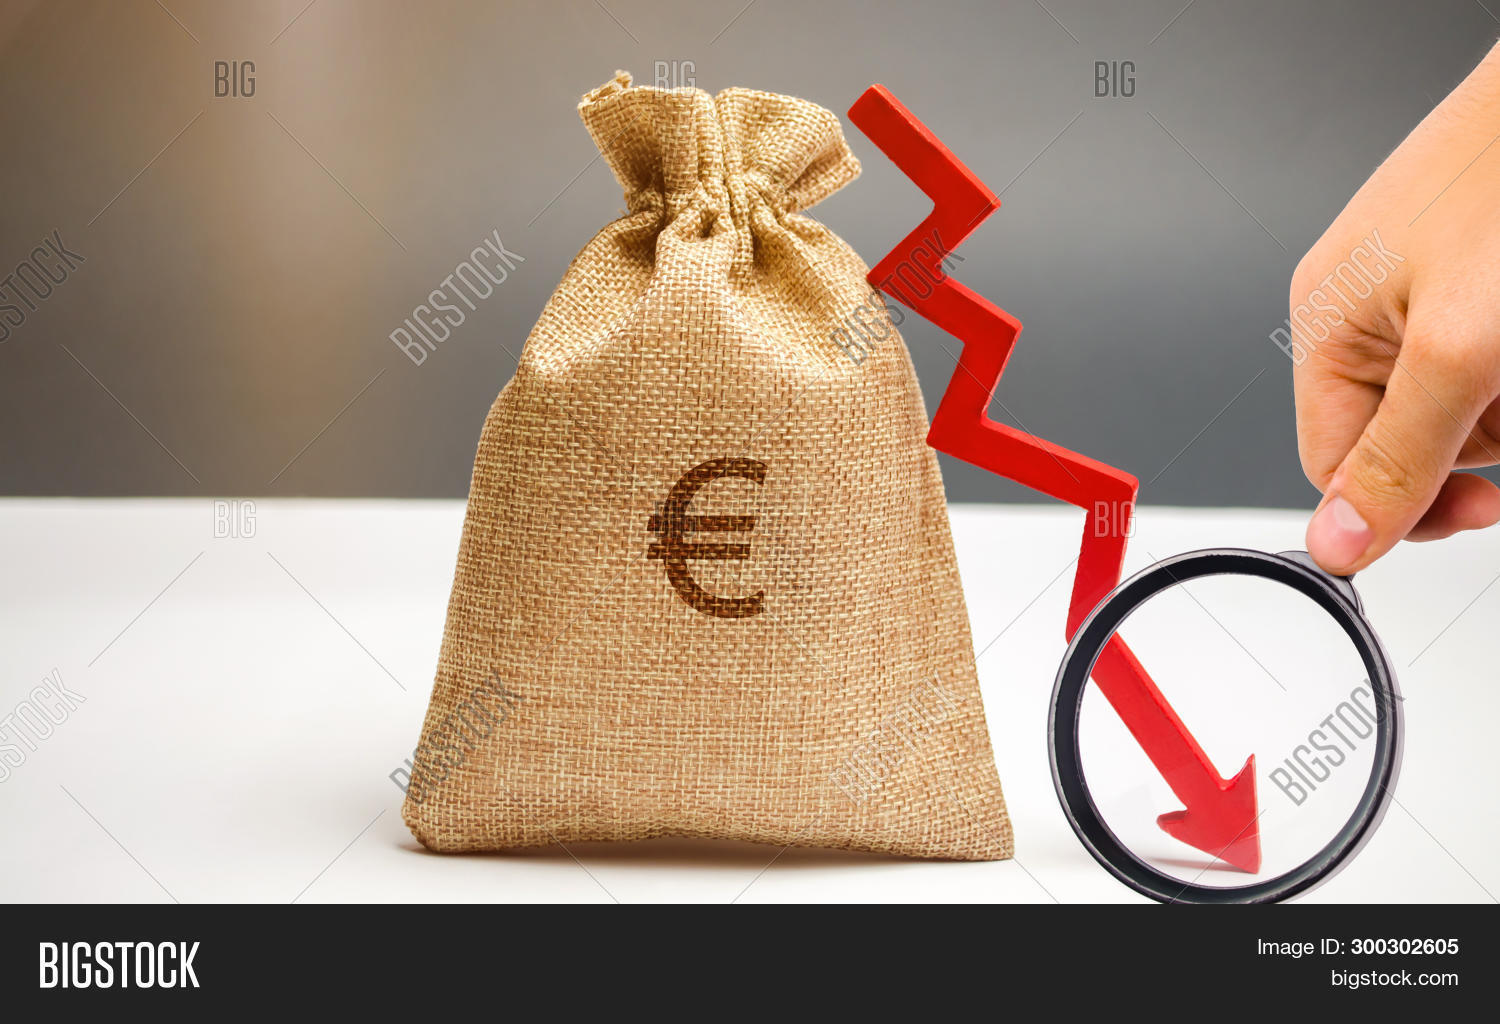 arrow,background,bad,bank,banking,bankruptcy,budget,business,cash,chart,concept,cost,crash,crisis,currency,cut,data,debt,decline,dollar,down,drop,economic,economy,euro,expenses,fall,finance,financial,graph,income,investment,less,loss,low,lower,market,money,paper,profit,recession,reduction,revenue,statistics,stock,text